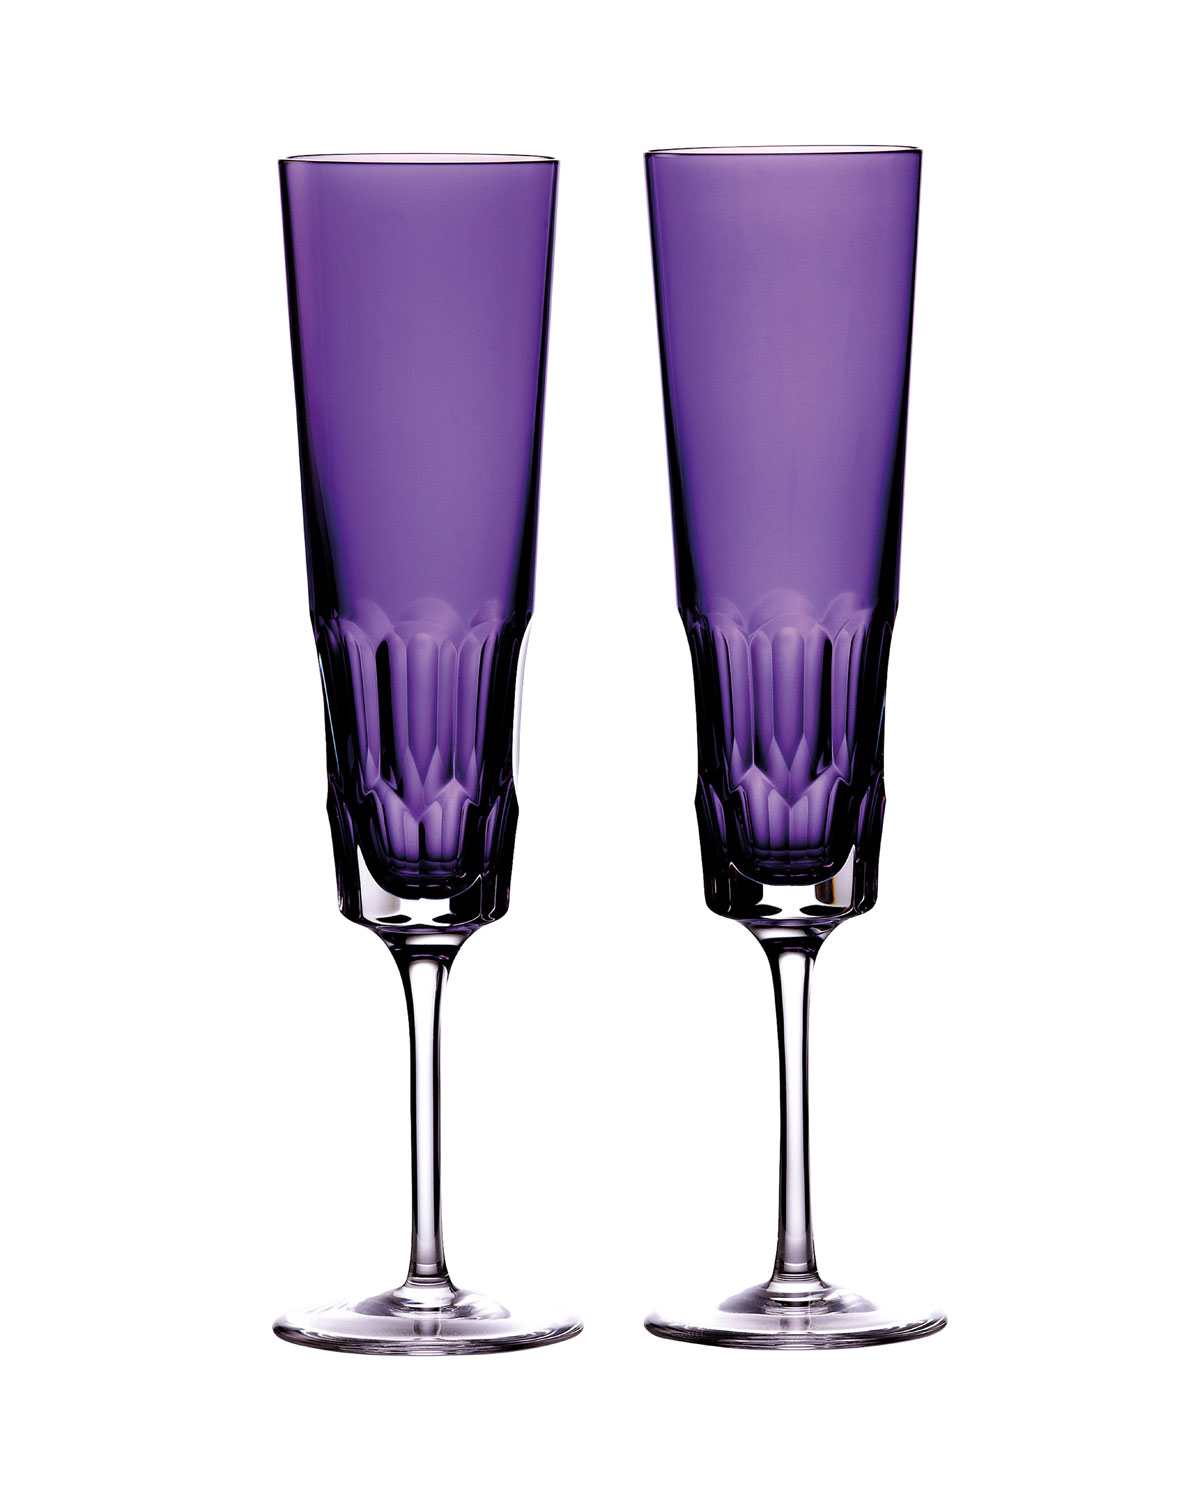 Waterford Crystal Jeff Leathan Icon Champagne Flutes, Set of 2 - Amethyst